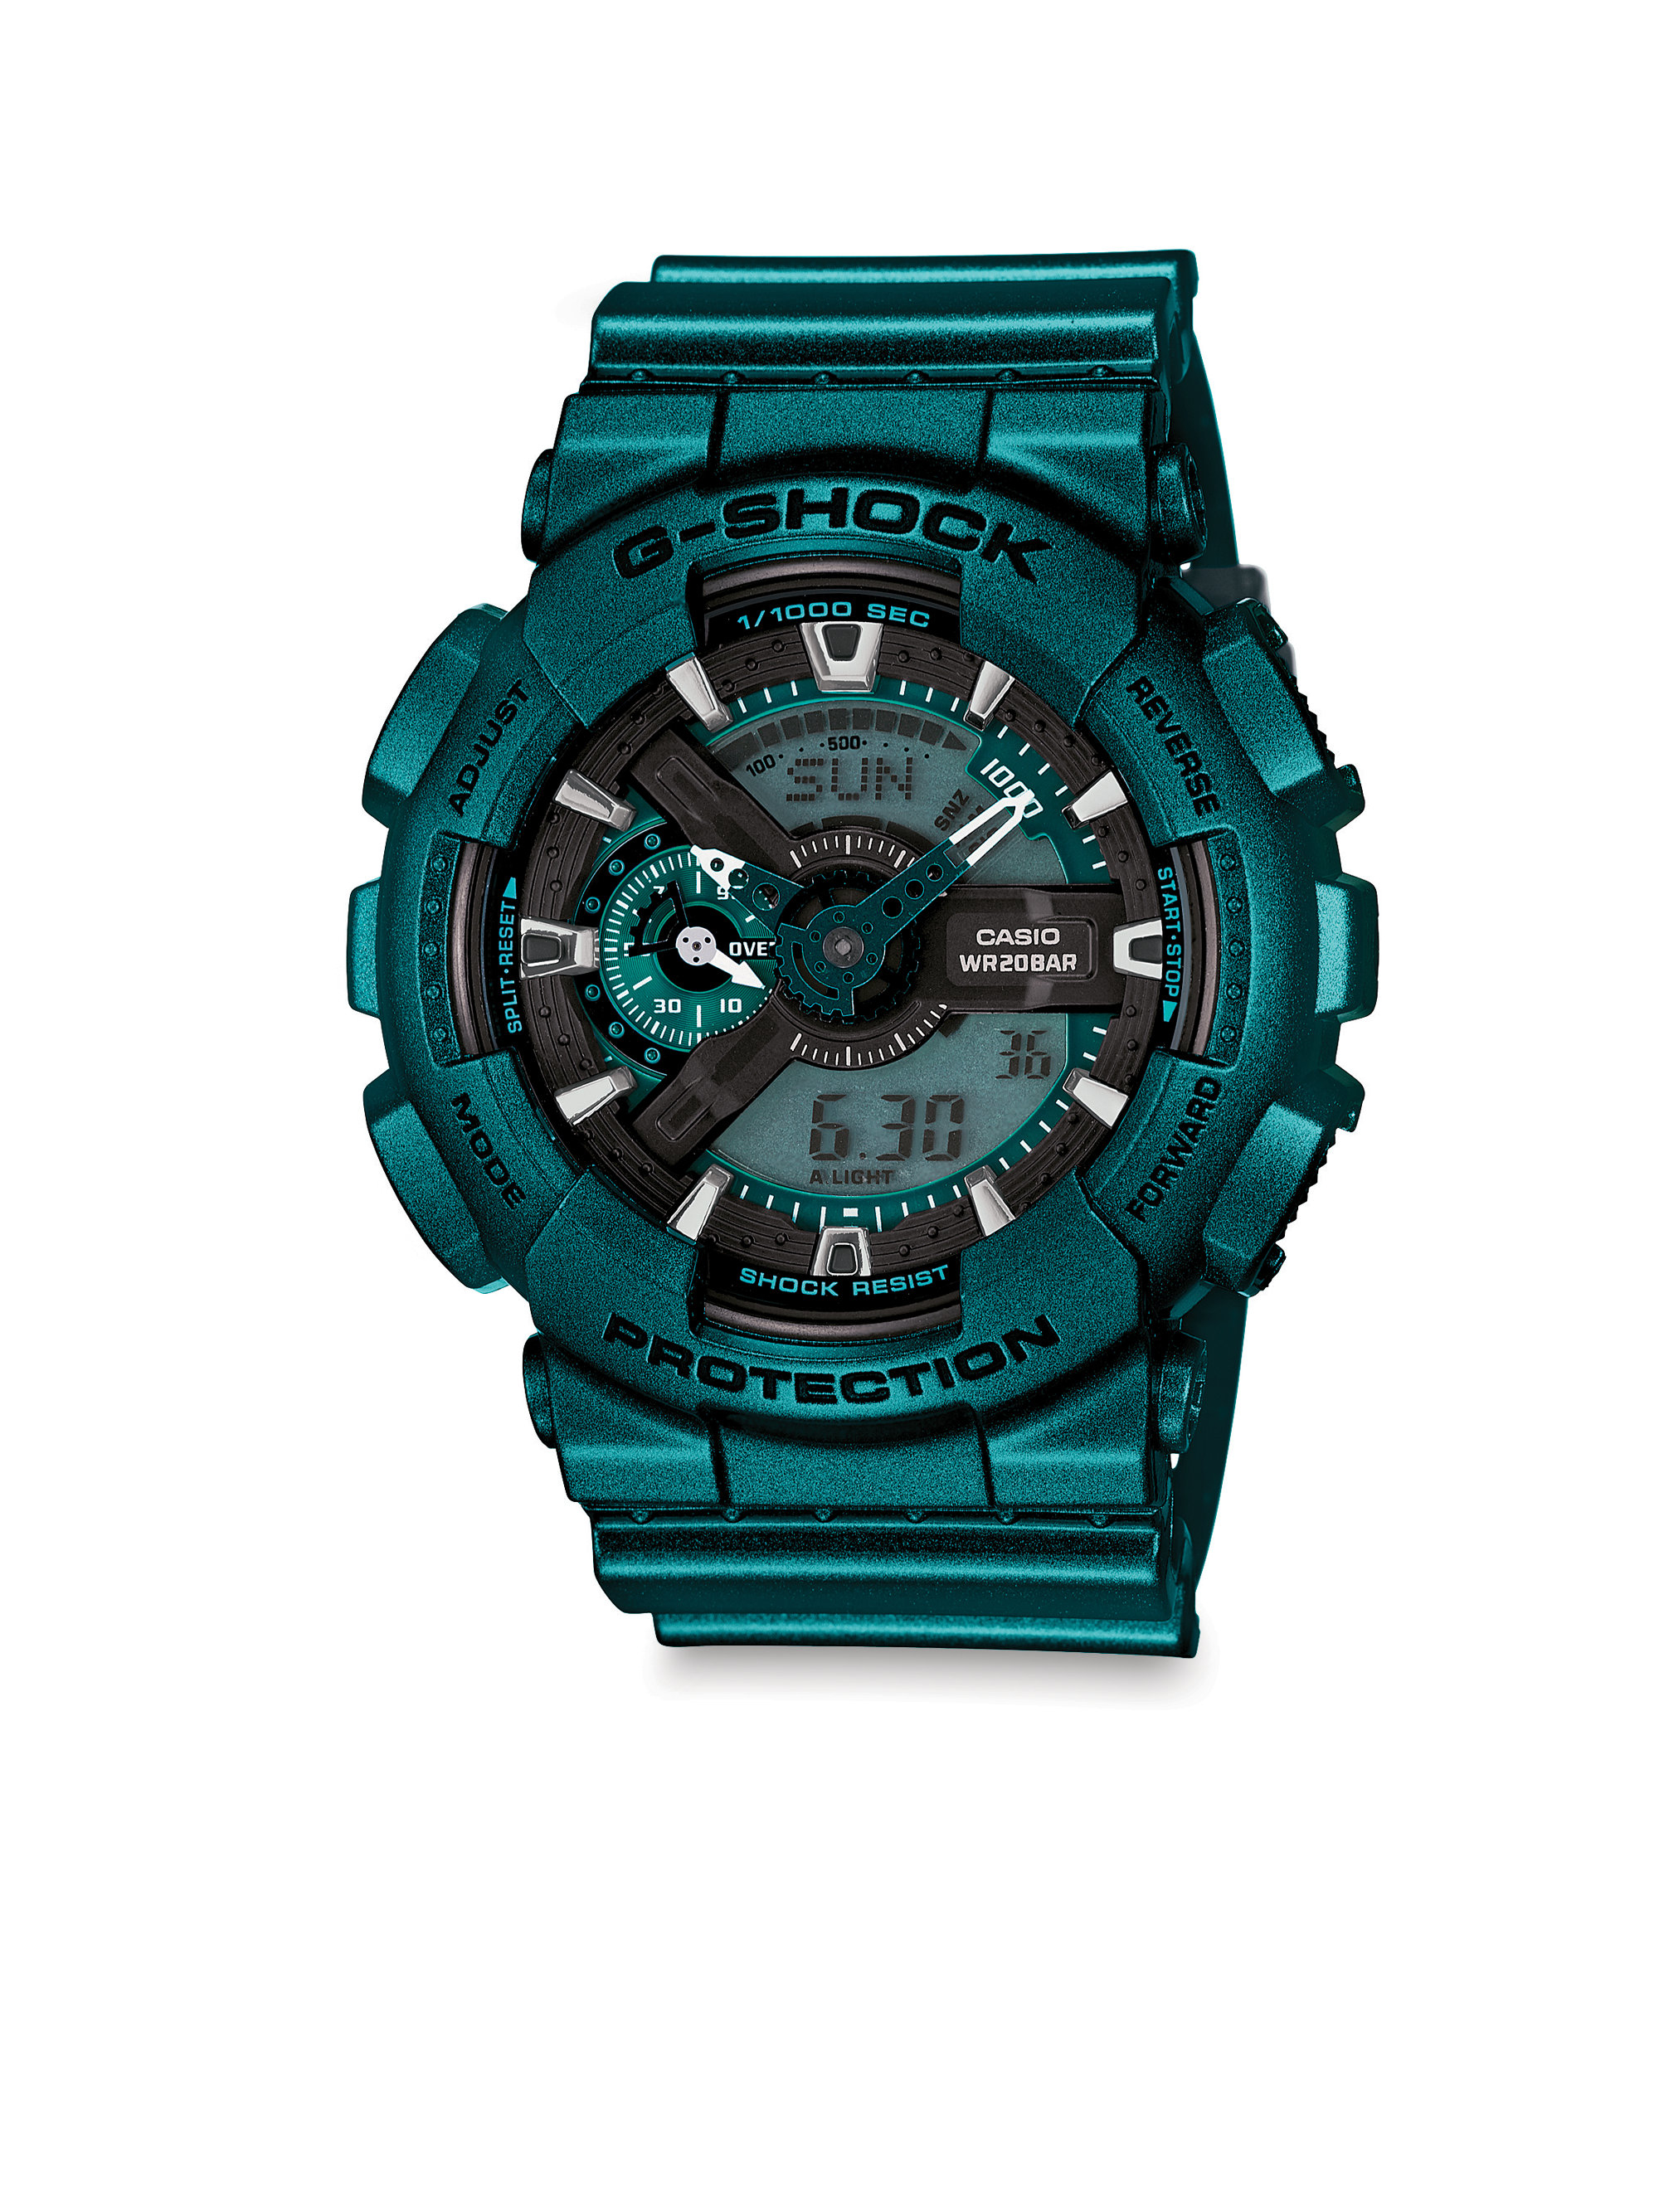 G Shock Neo Metallics Shock Reistant Watch In Green For